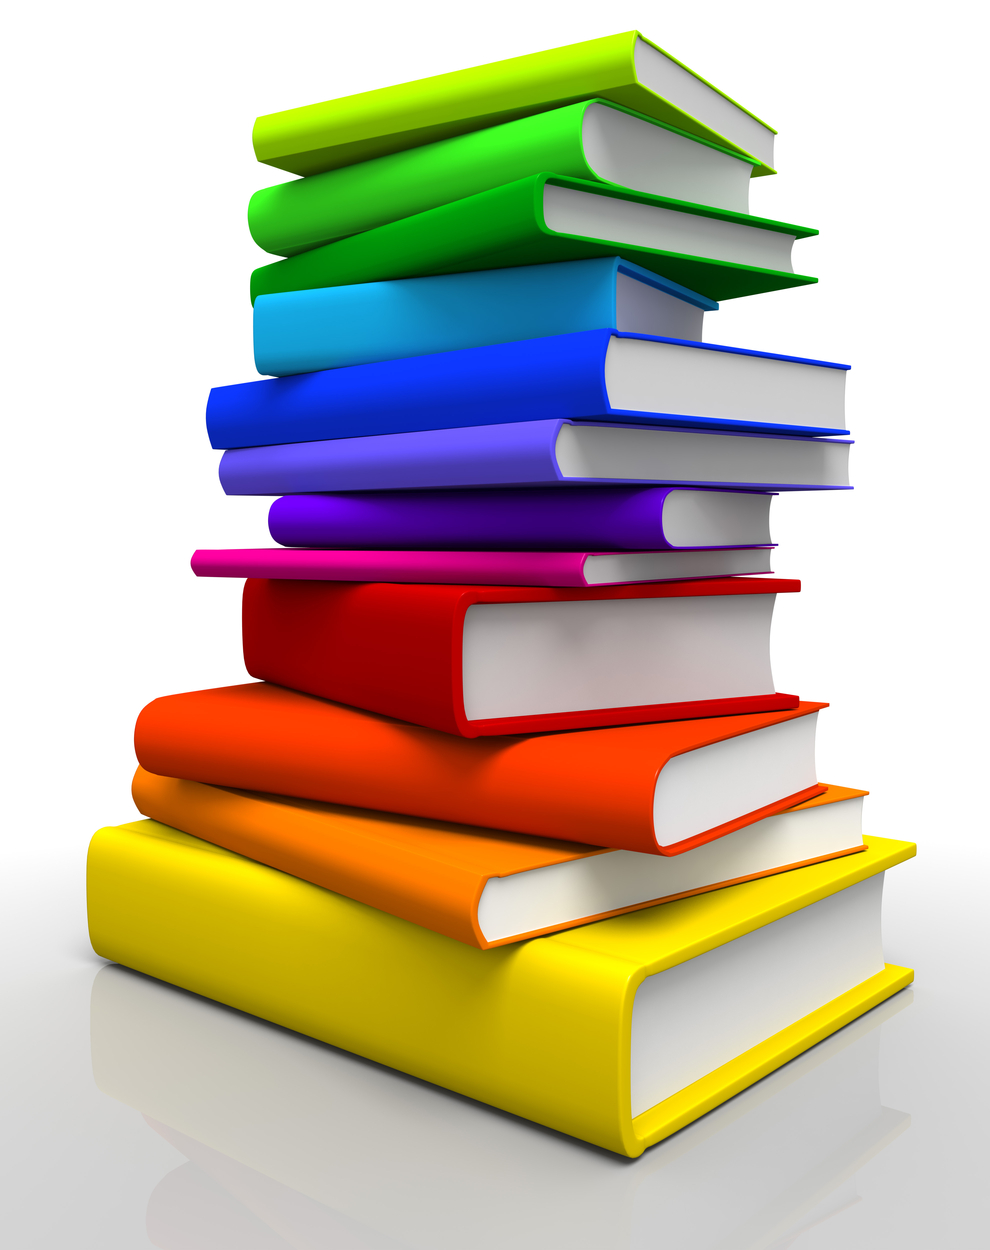 RAINBOW-BOOKS.jpg